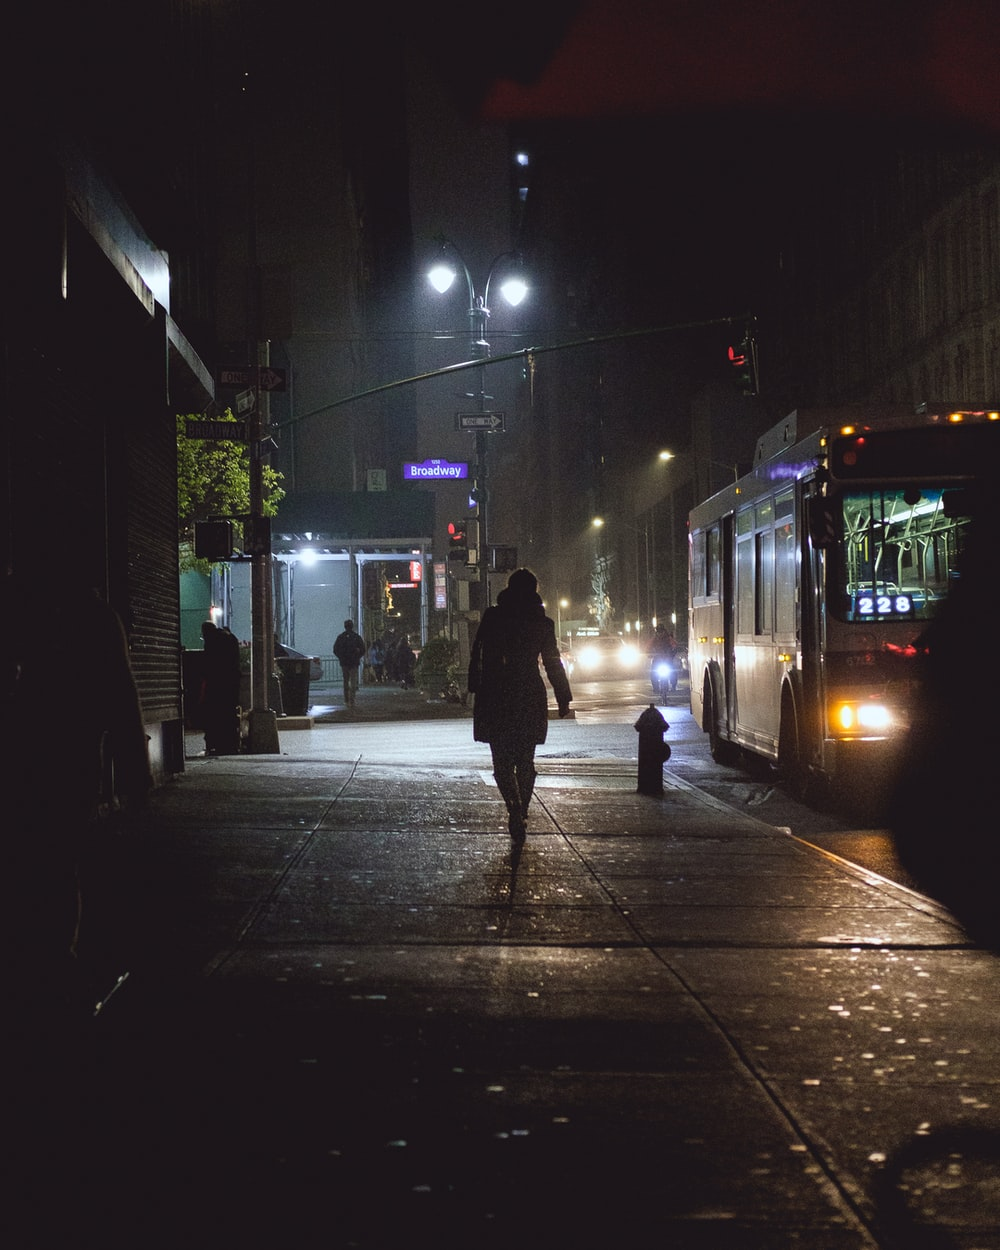 person walking on pathway near bus and vehicles during night time